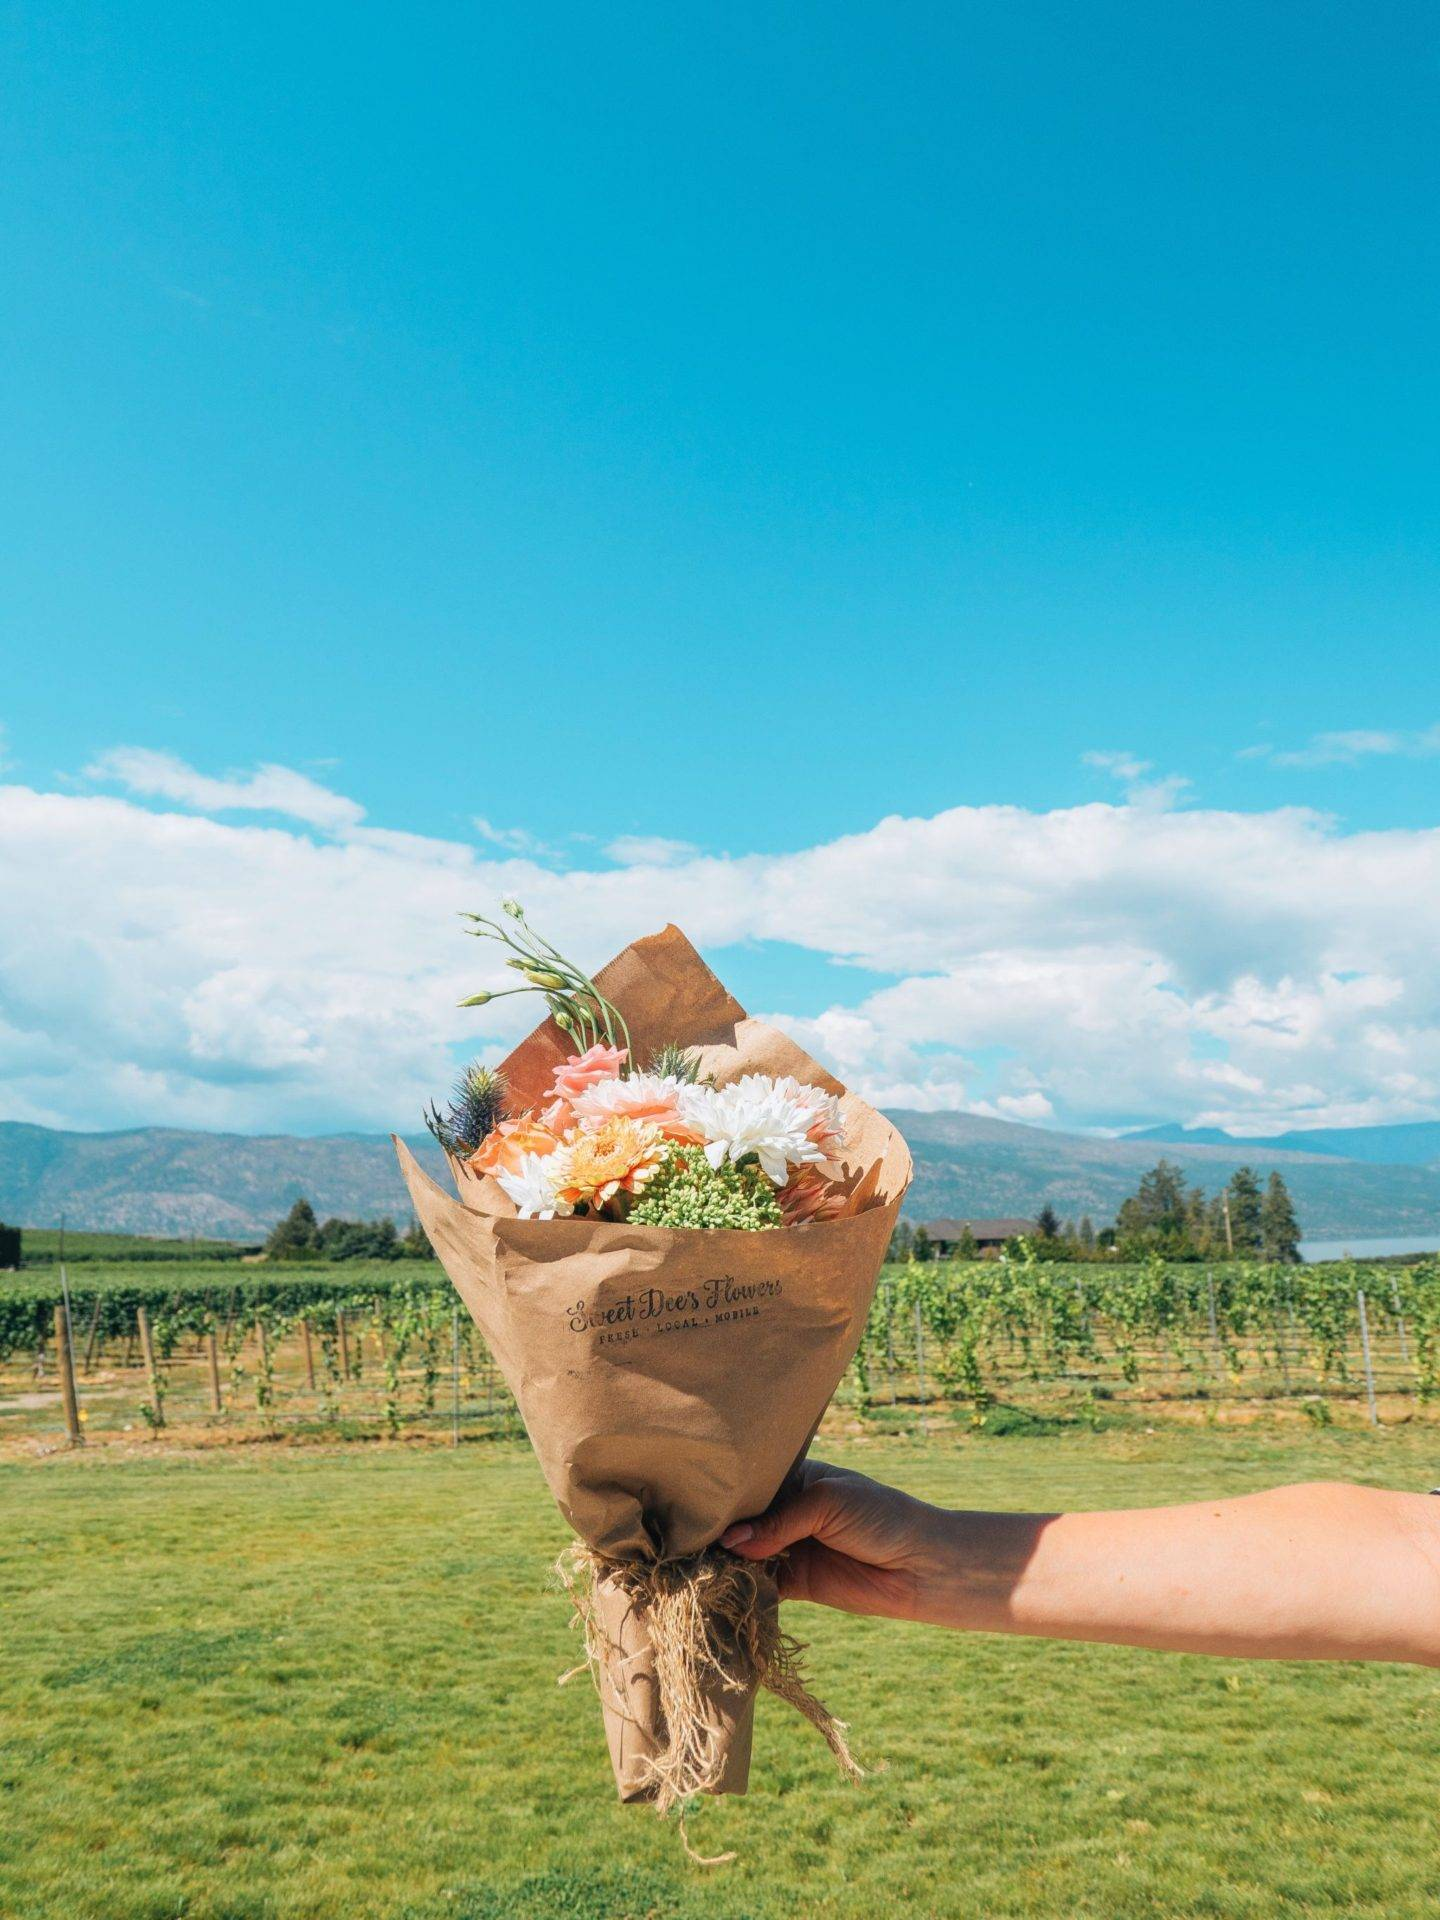 Looking for the most beautiful Instagrammable places in Kelowna? Check out this guide to find the best photography spots in Kelowna! Pictured here: Sweet Dee's Flower Truck